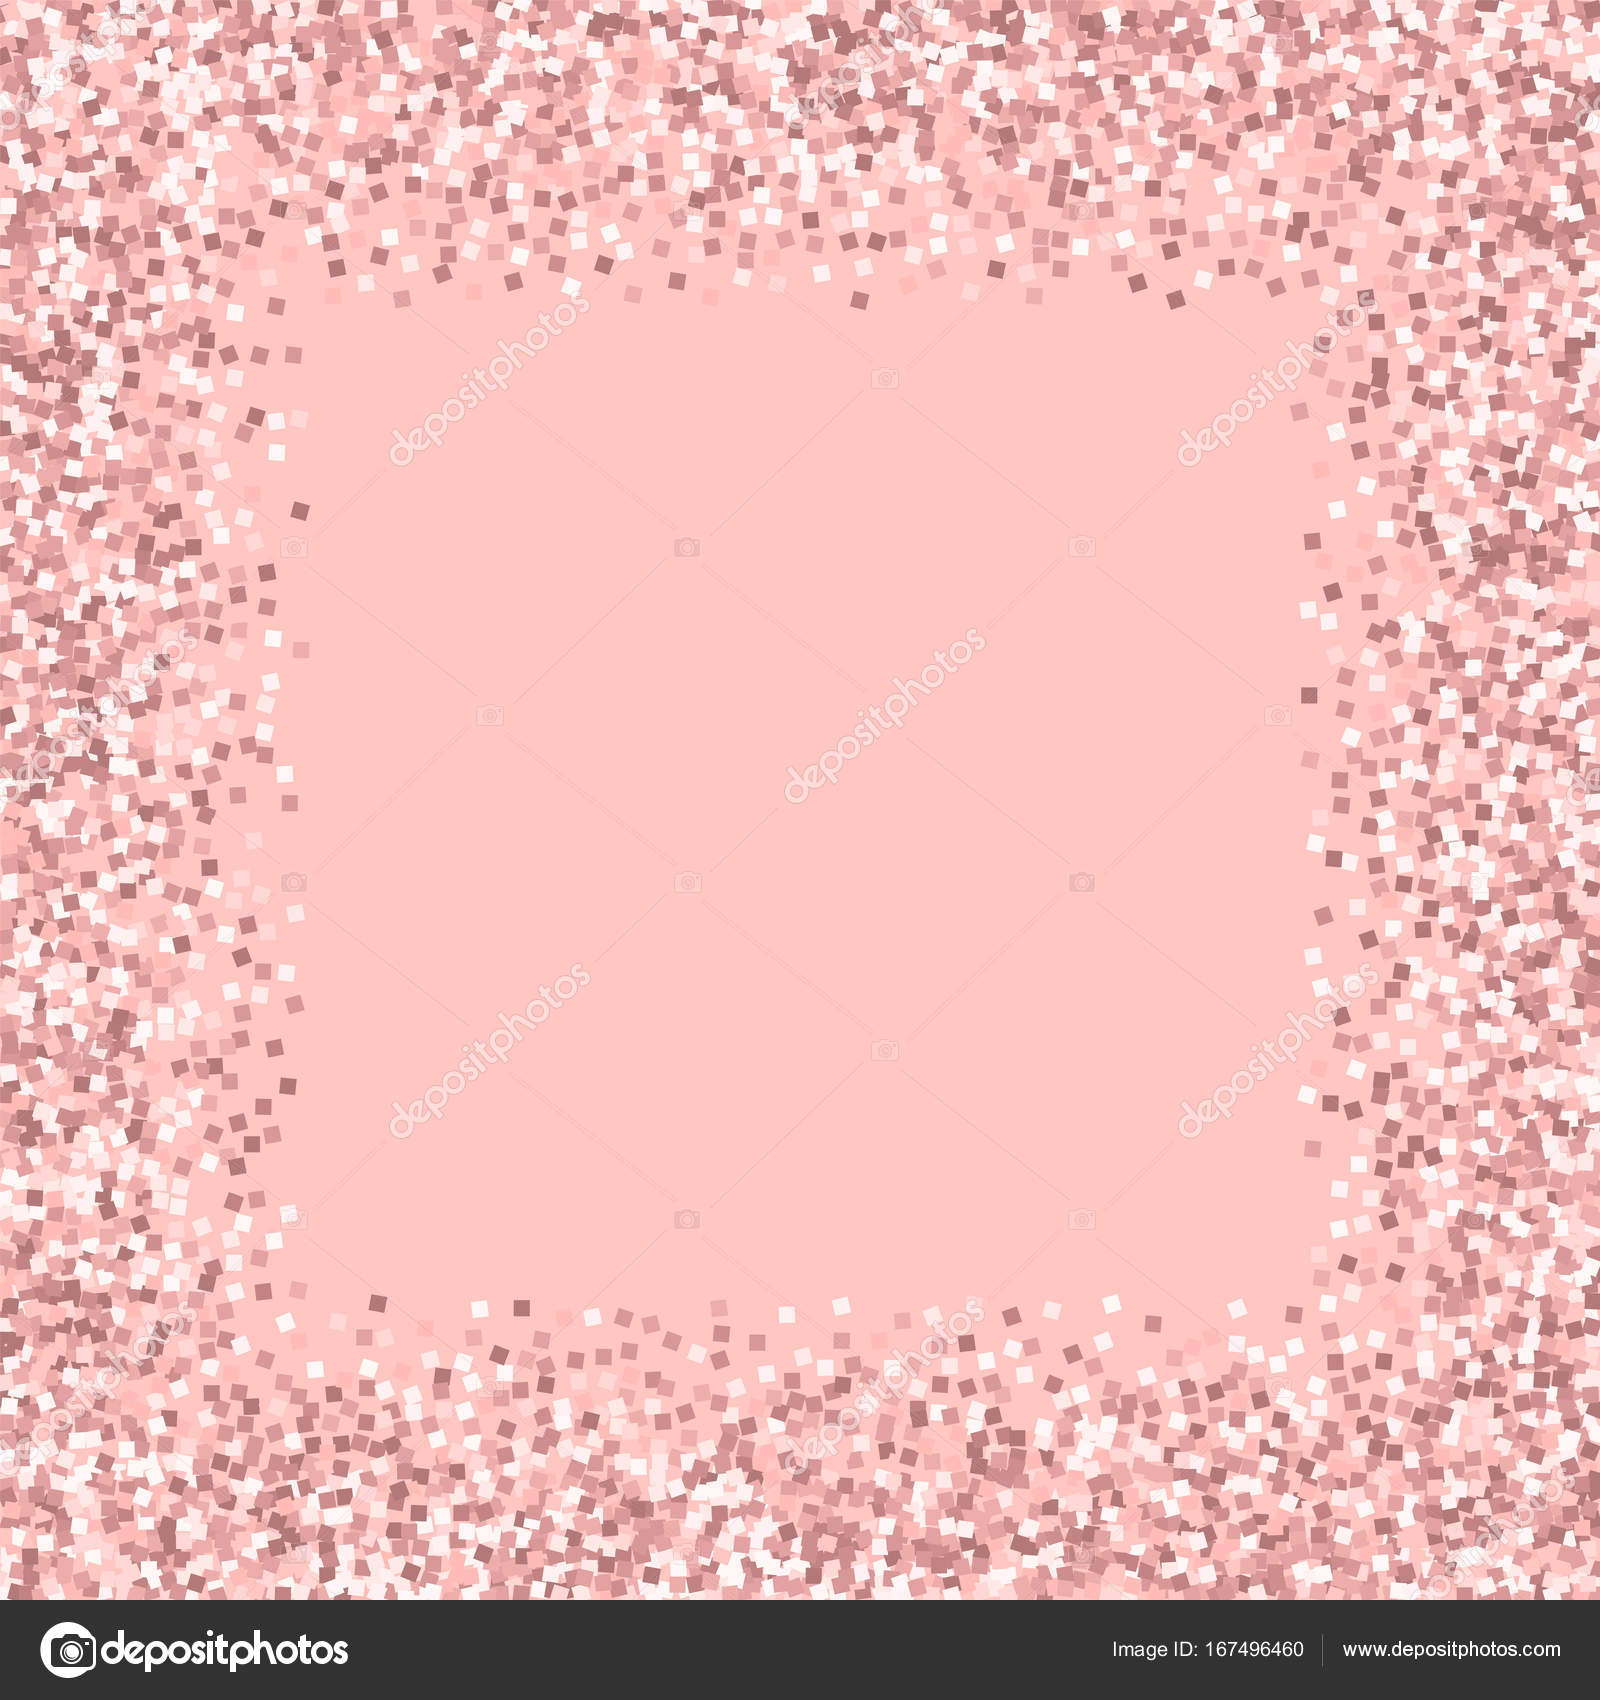 Pink Gold Glitter Chaotic Border With On Background Classy Vector Stock